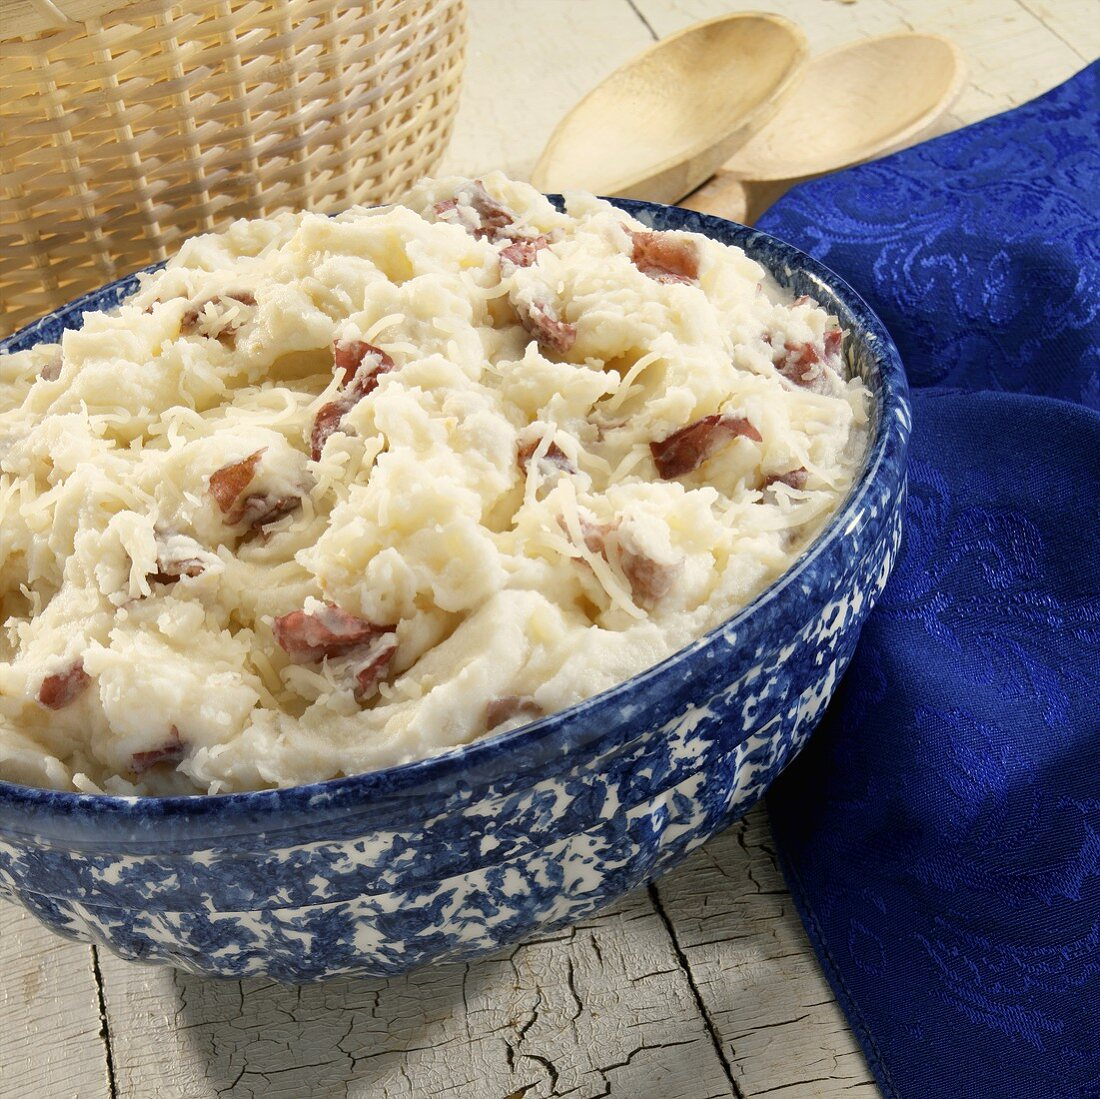 Mashed red potatoes with sour cream and Parmesan